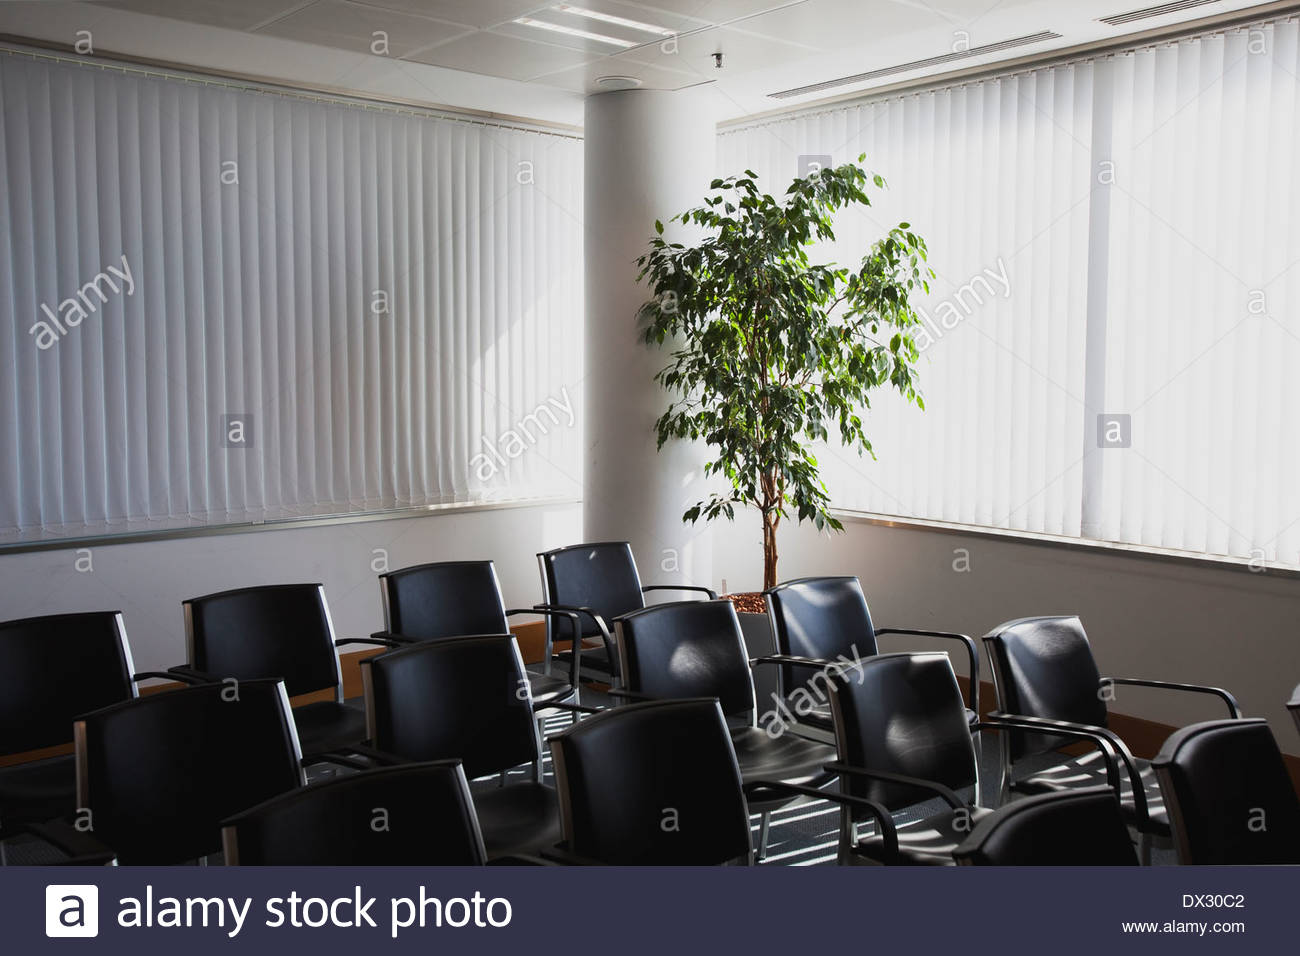 Aseptic Room Stock Photos Aseptic Room Stock Images Alamy